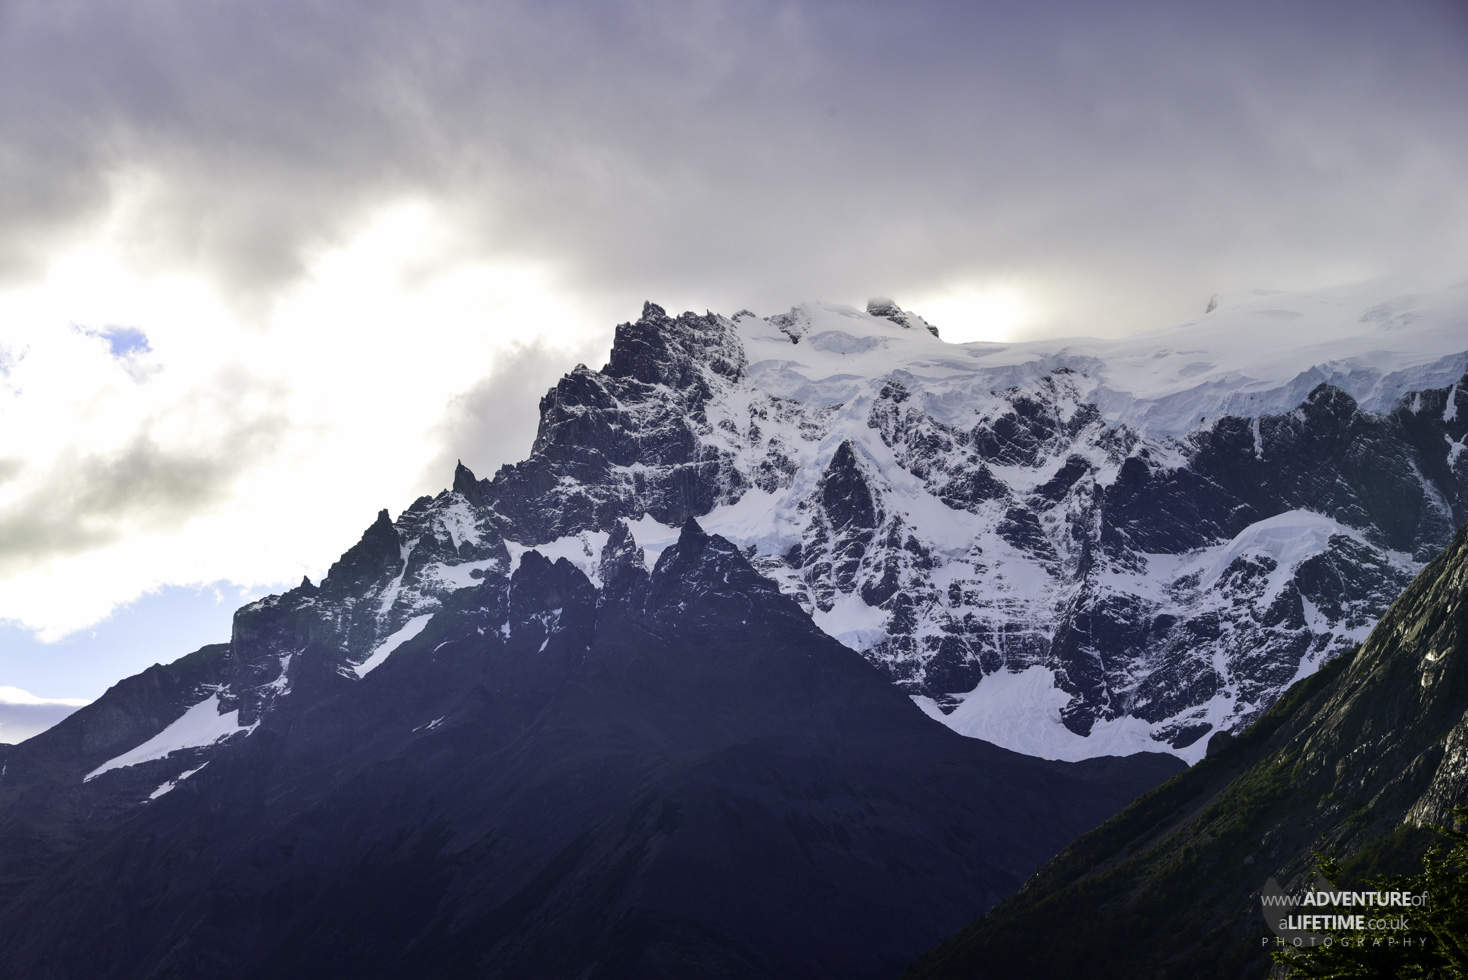 Dusk over Snowcapped Mountains in Torres del Paine